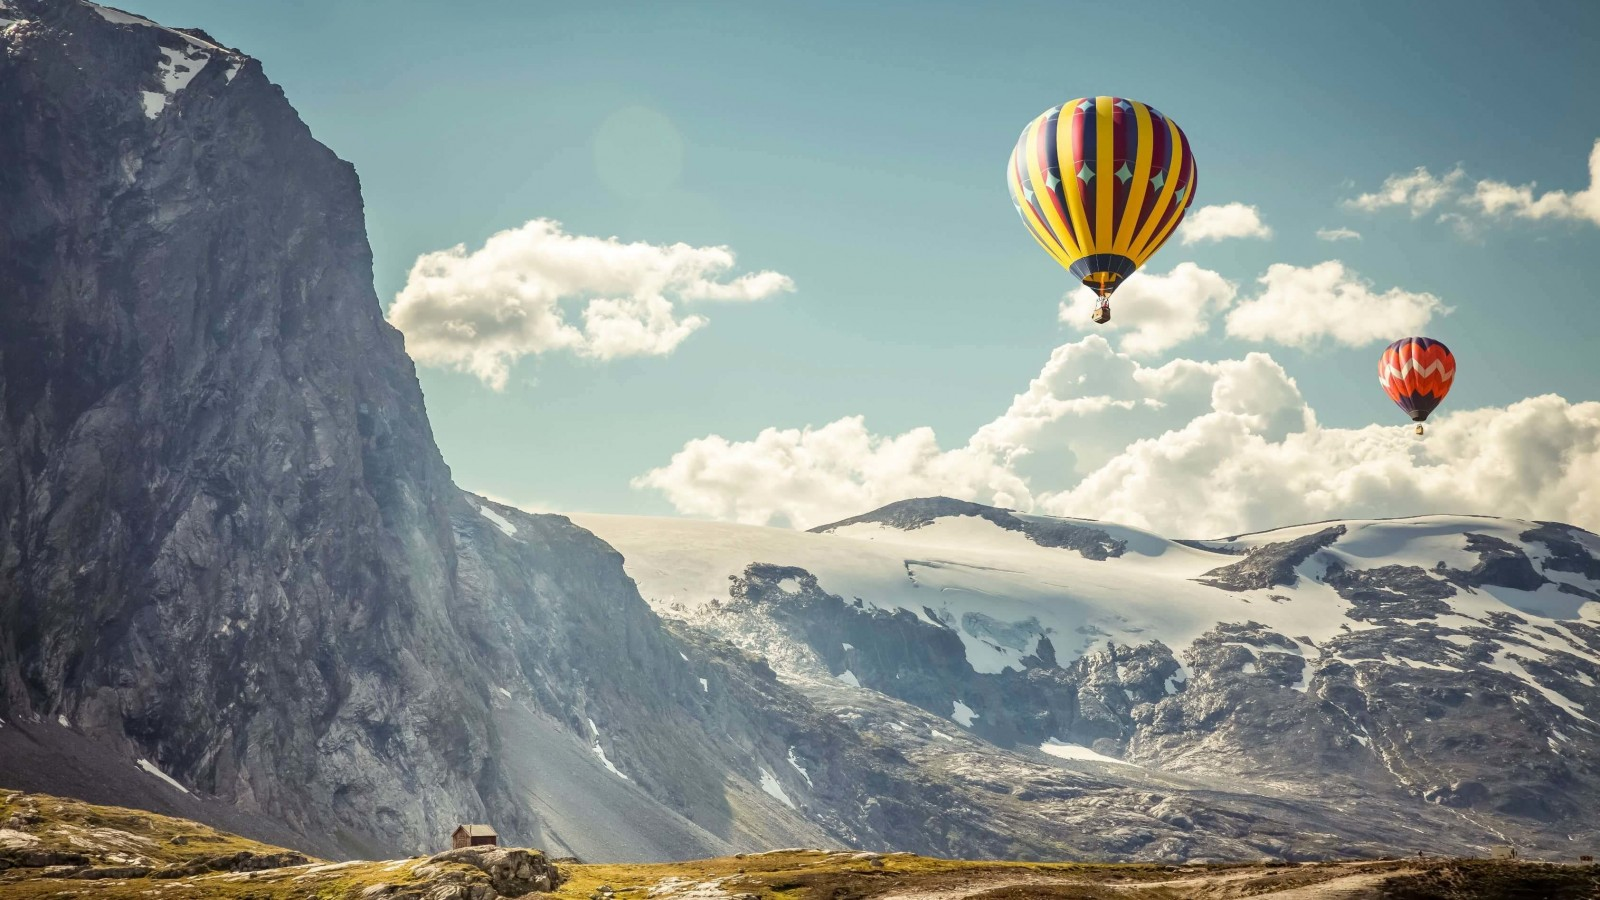 Hot Air Balloon Over the Mountain Wallpaper for Desktop 1600x900